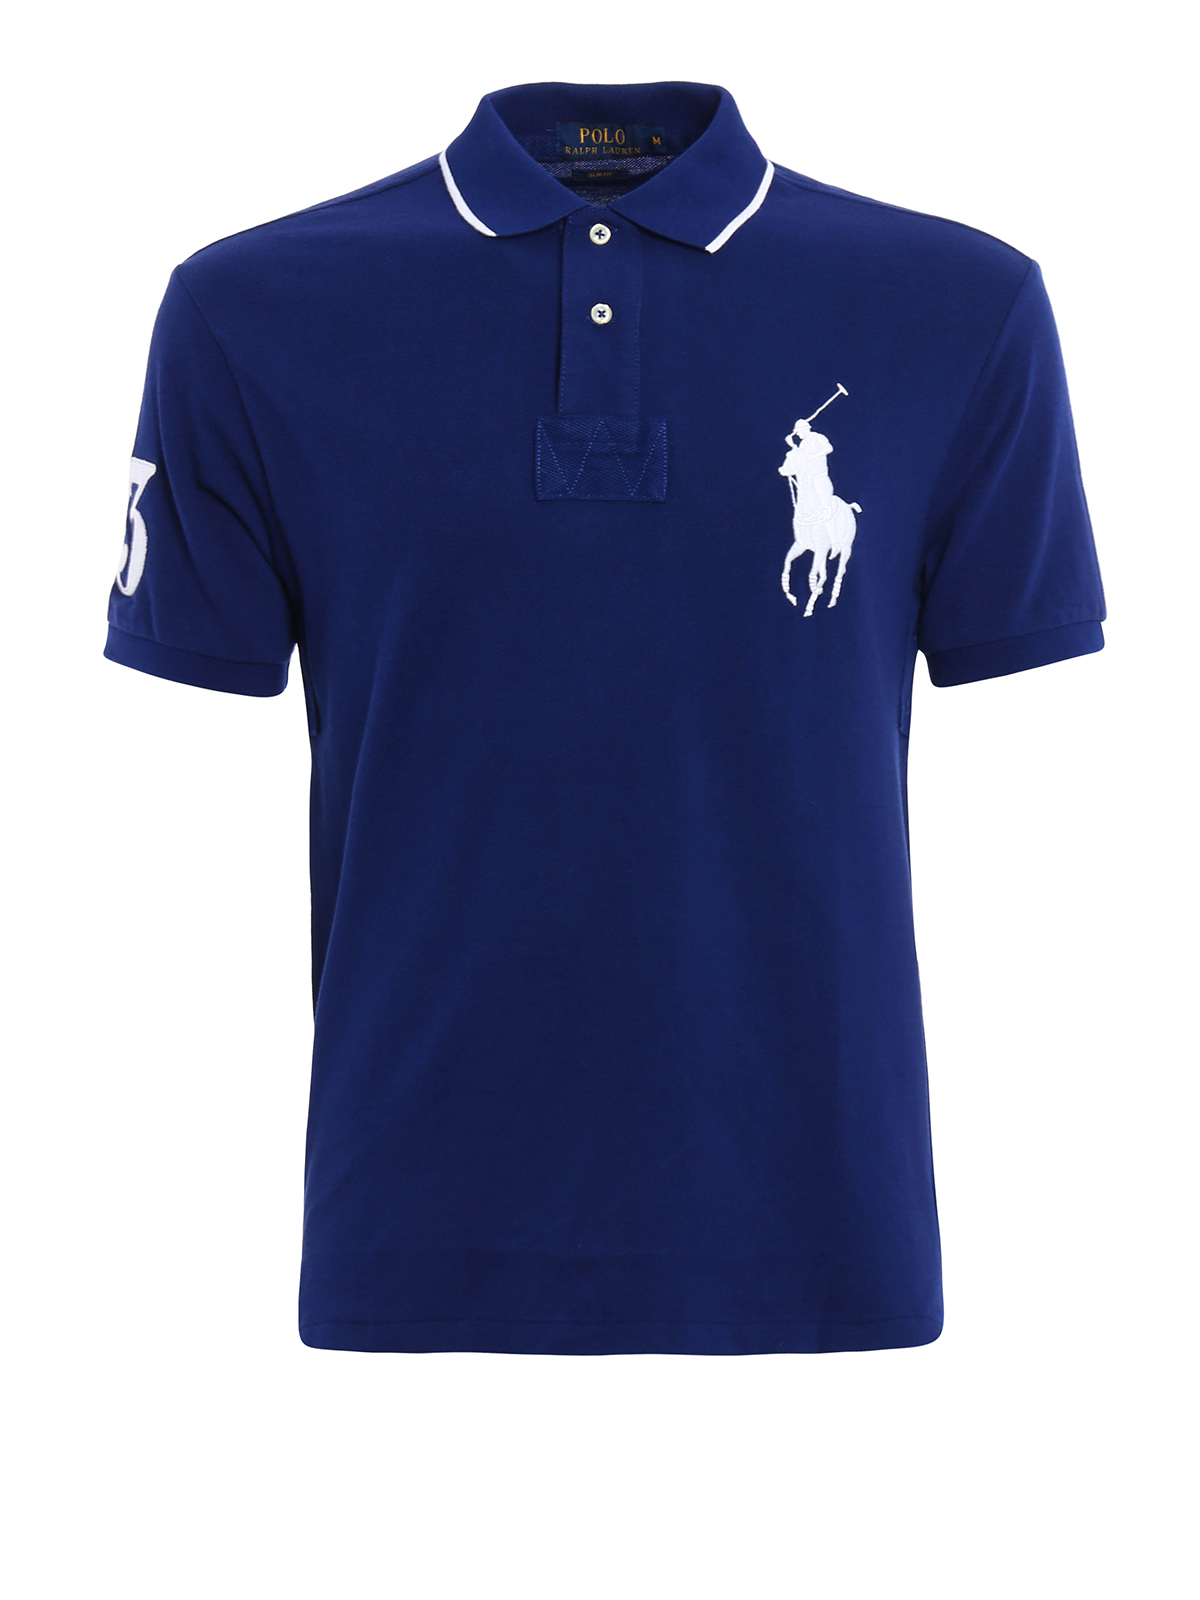 Polo clothing online